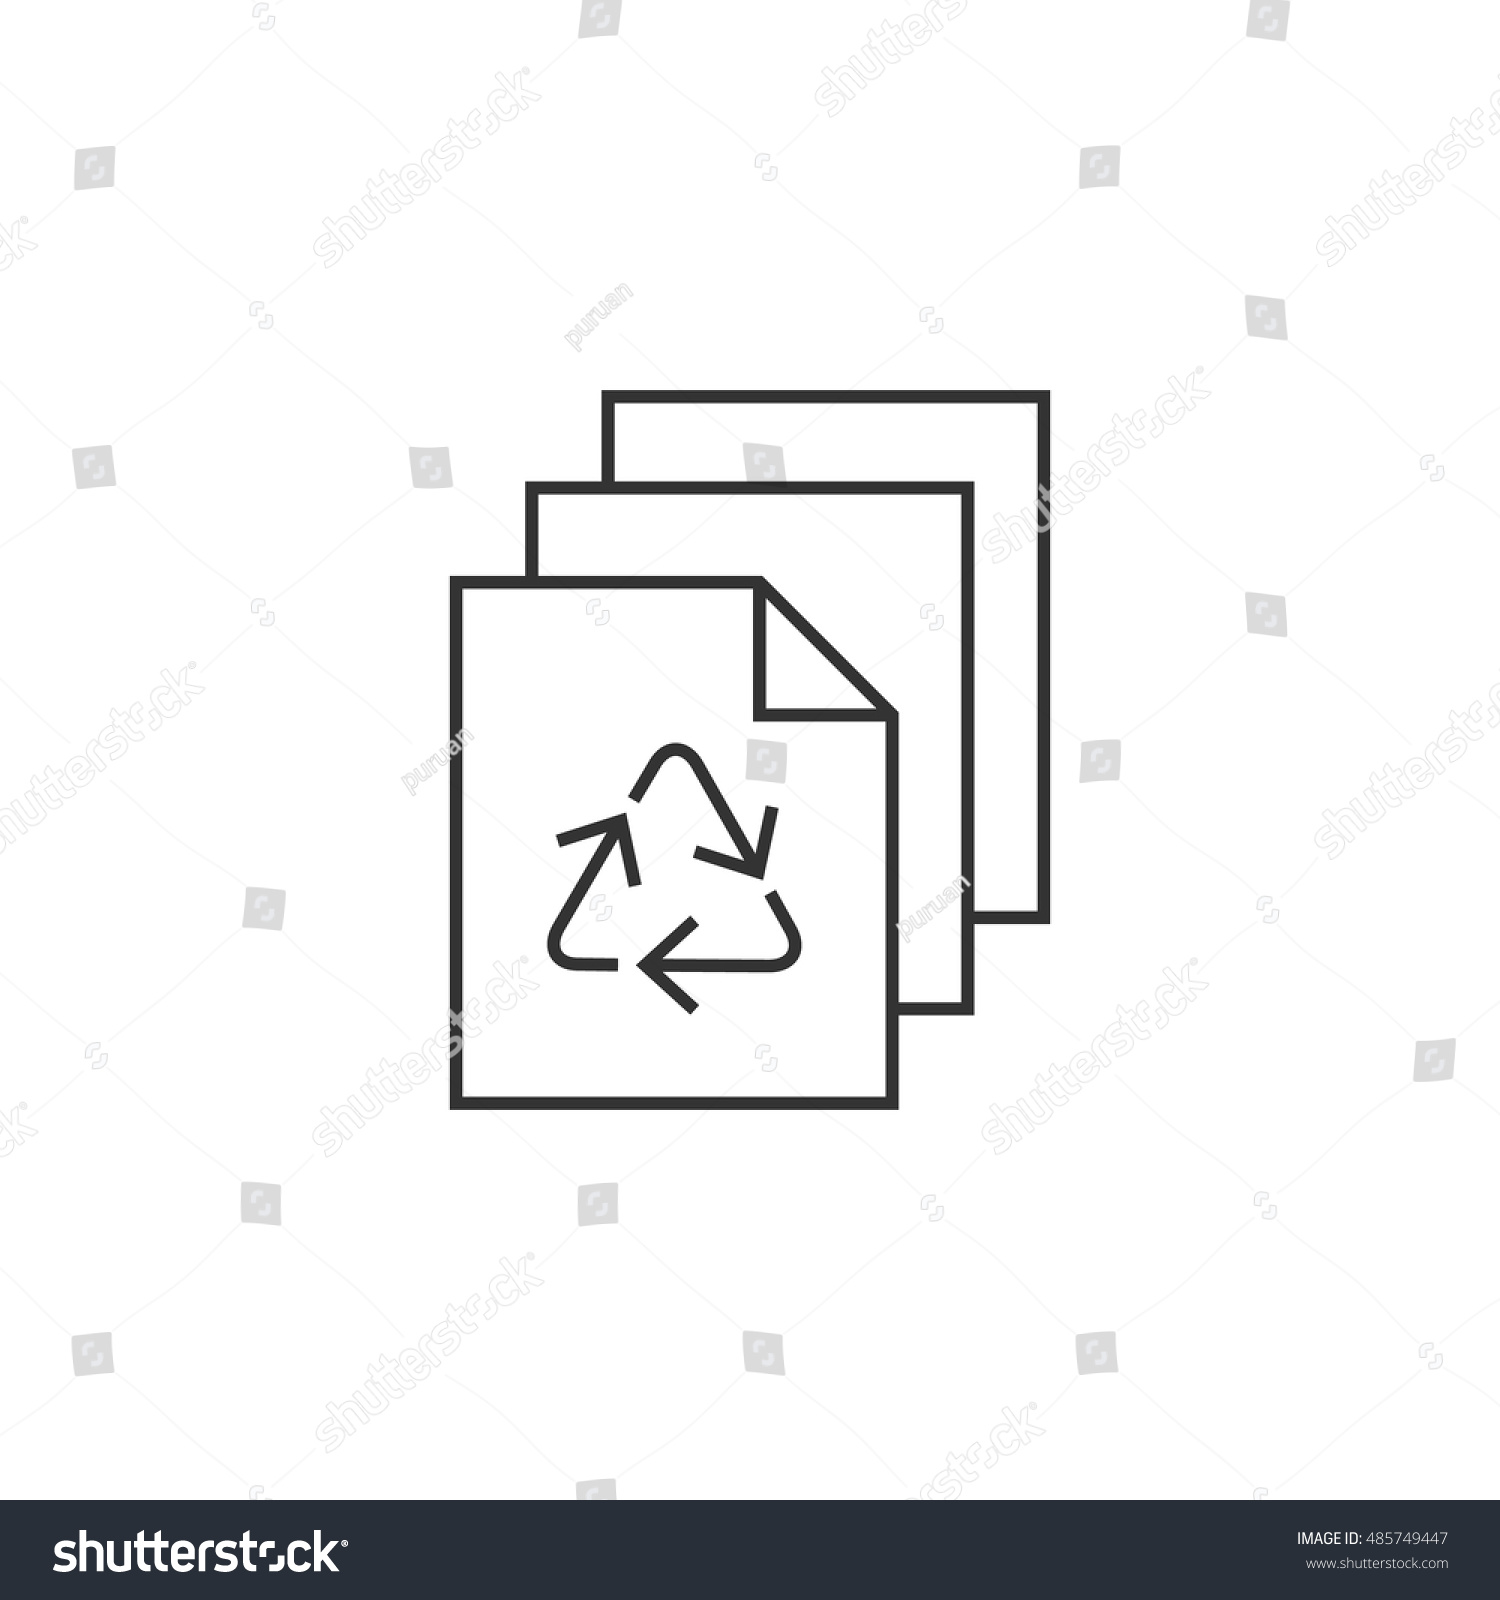 Recycle symbol icon thin outline style stock vector 485749447 recycle symbol icon in thin outline style environment recyclable paper go green buycottarizona